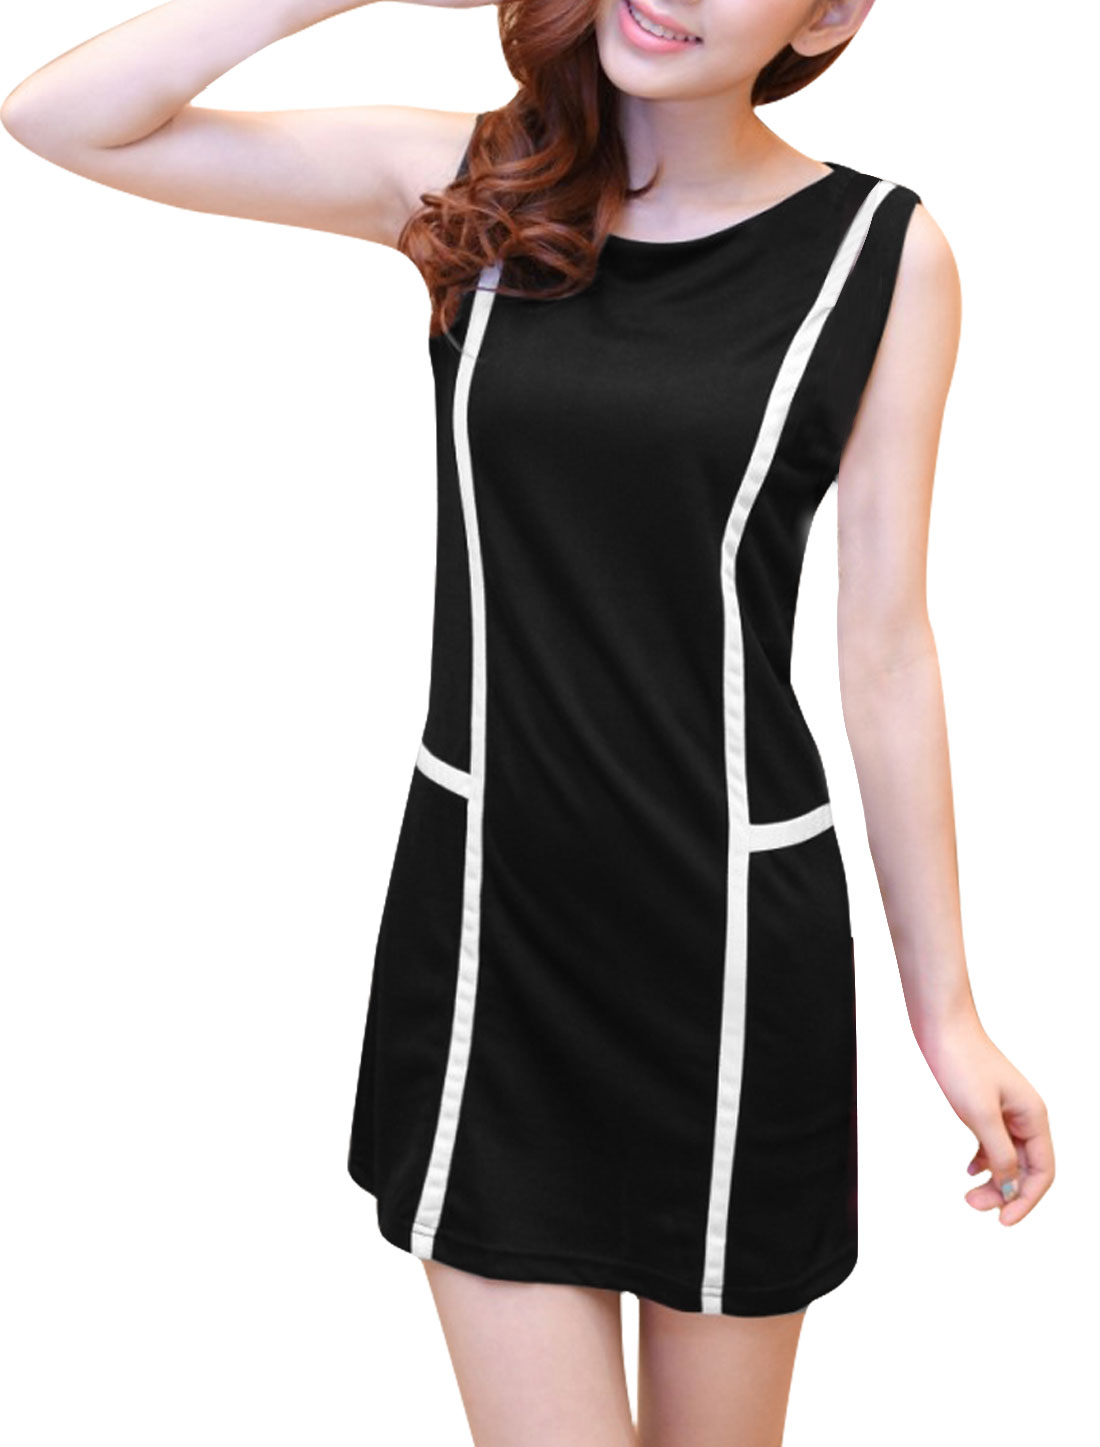 Lady Business Office Slim Fit Striped Black Mini Tank Dress XS